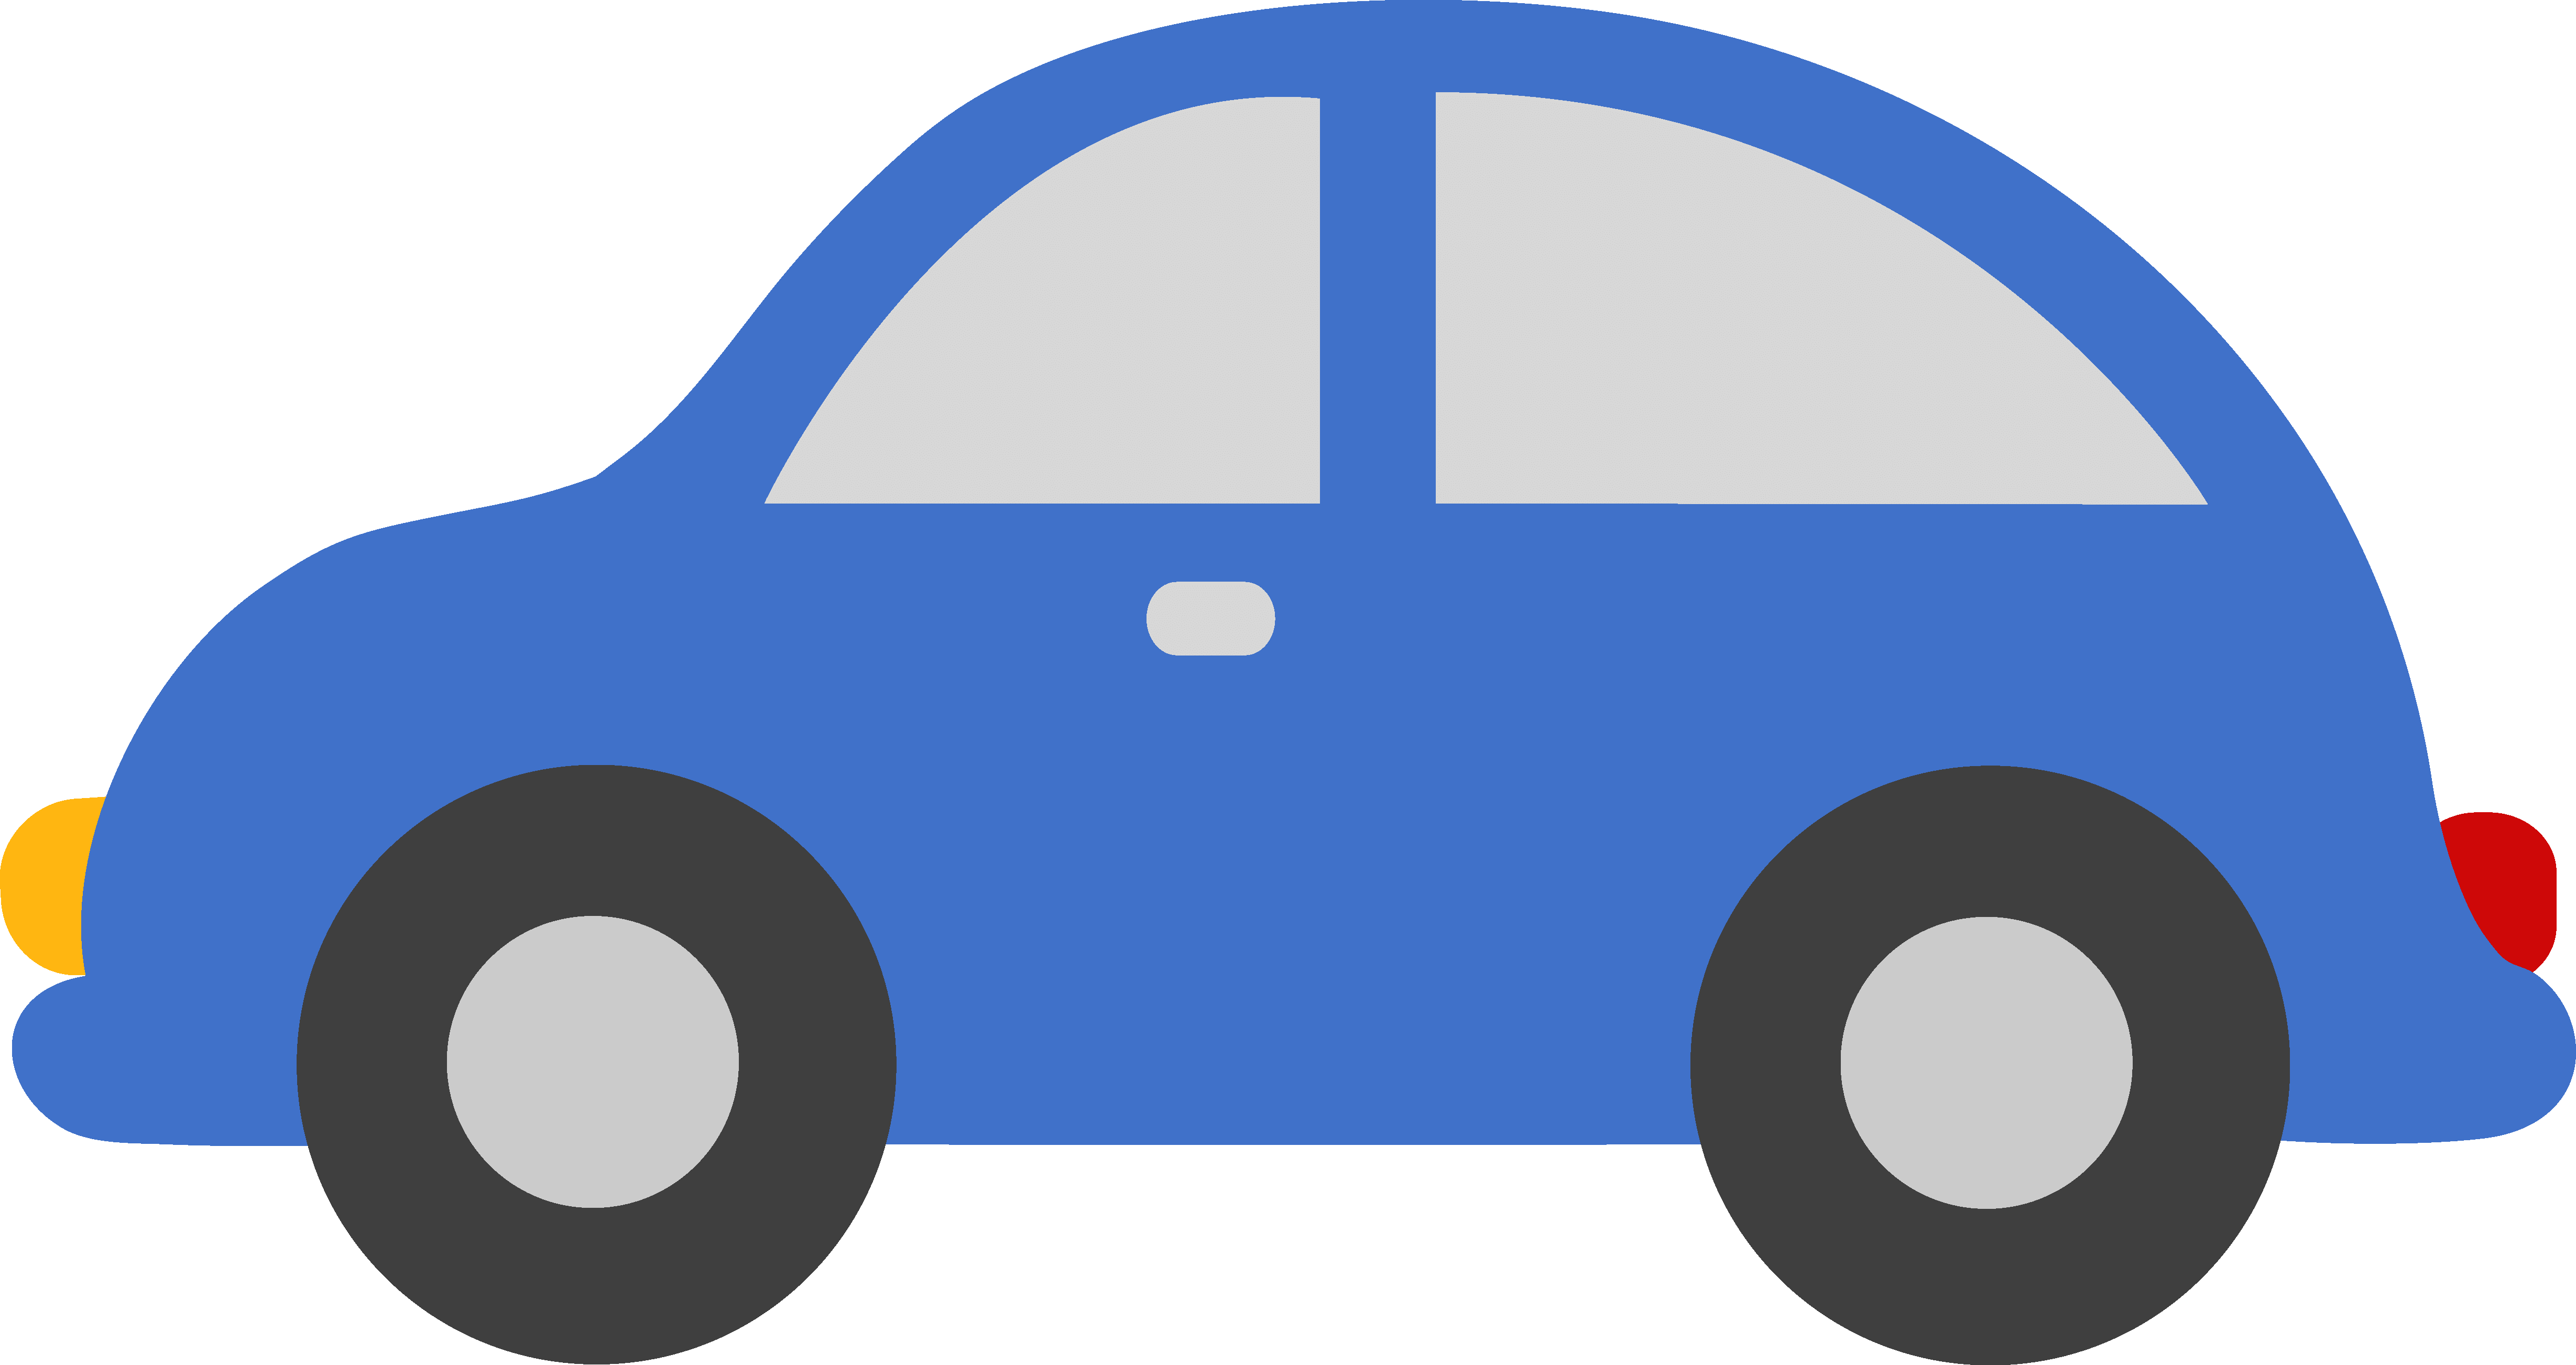 Clipart cars license. Toy car free clip